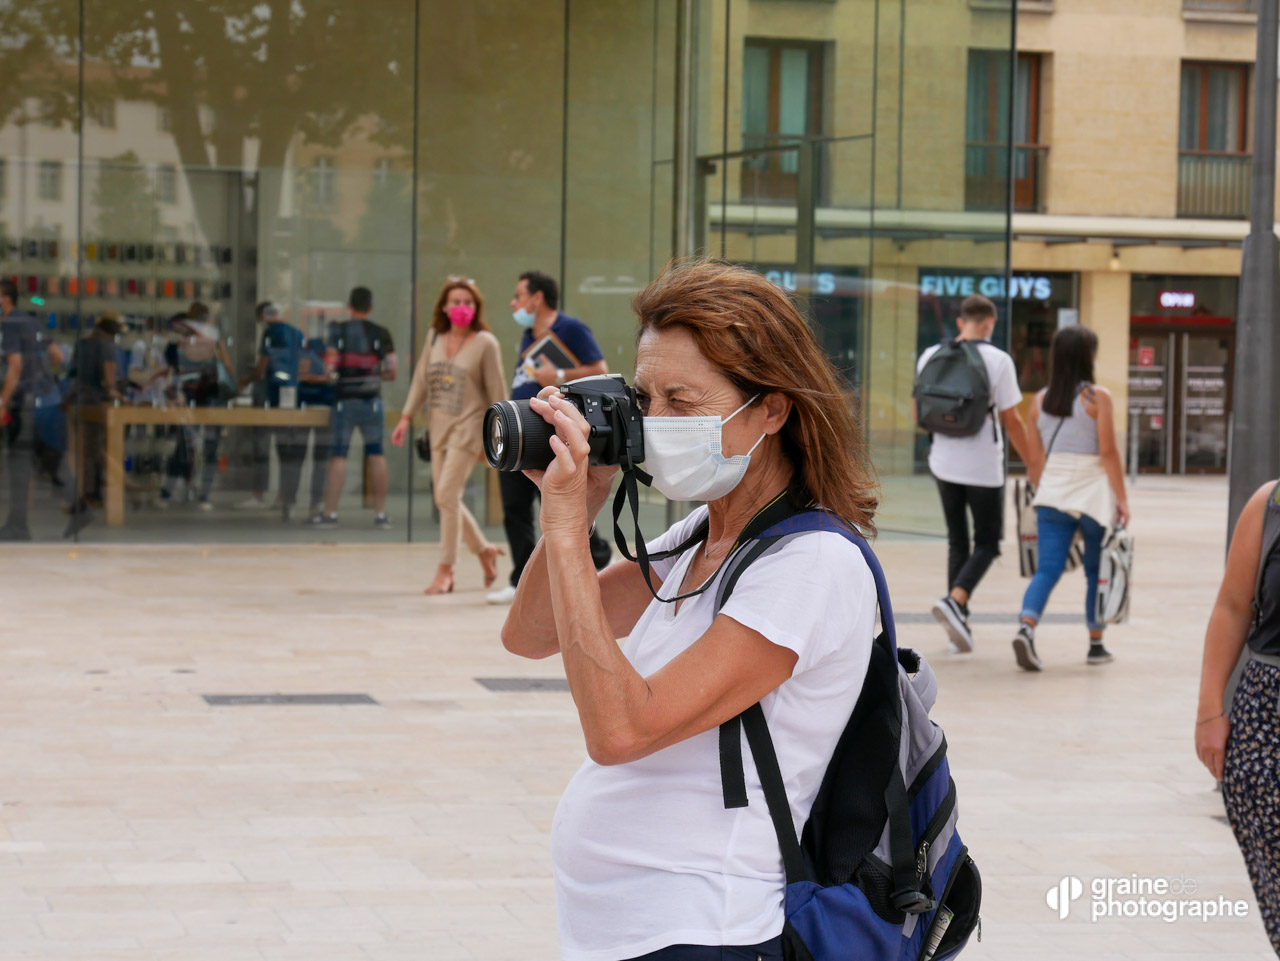 streetphotography-aix-en-provence-8